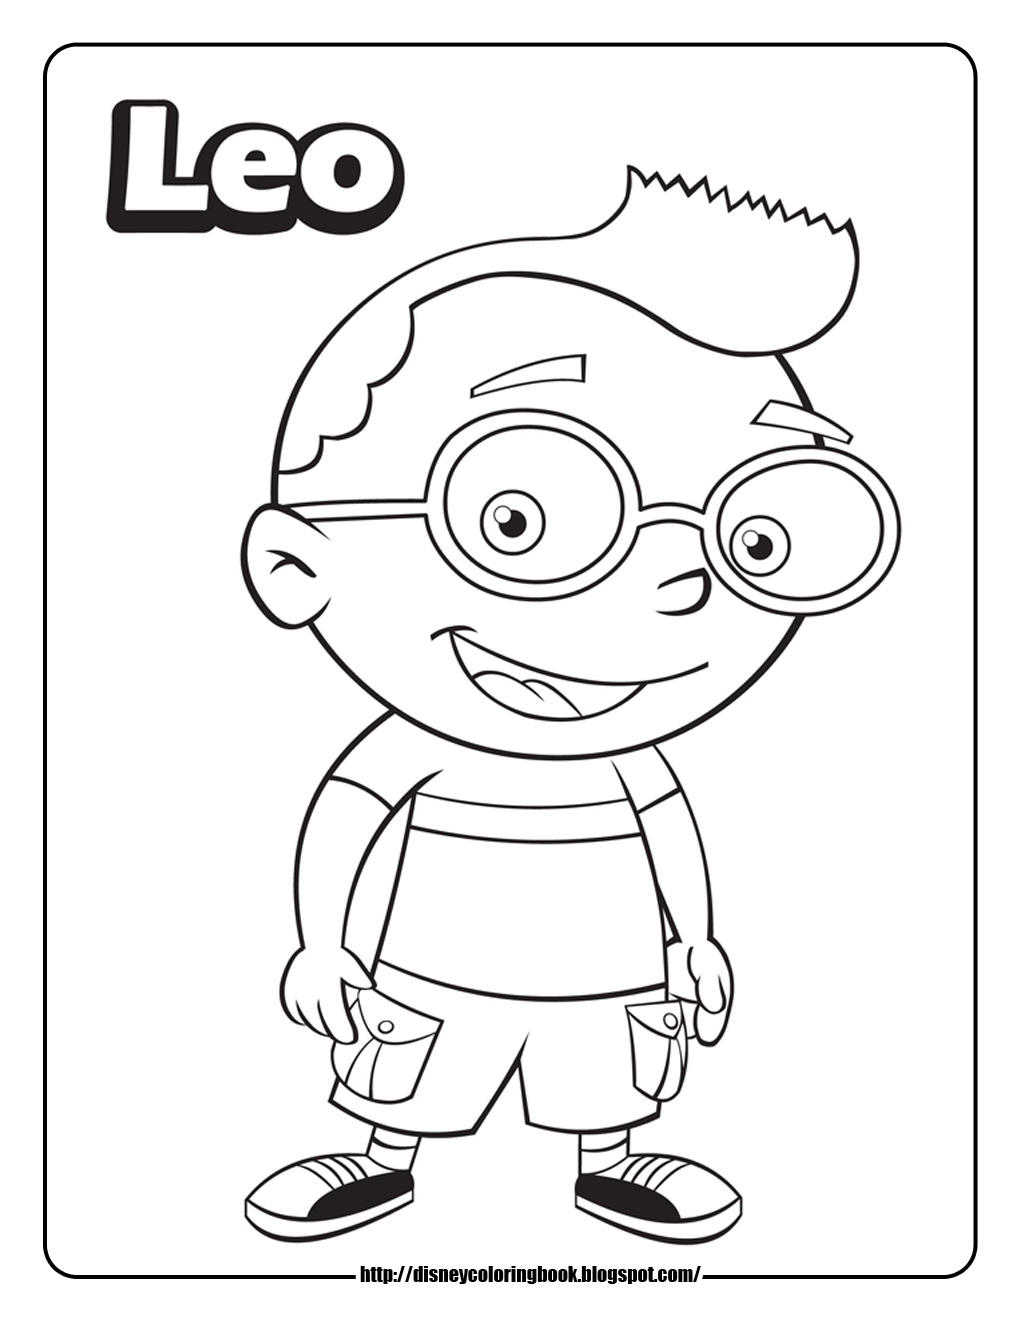 Little einsteins 3 free disney coloring sheets learn to for Leo coloring pages